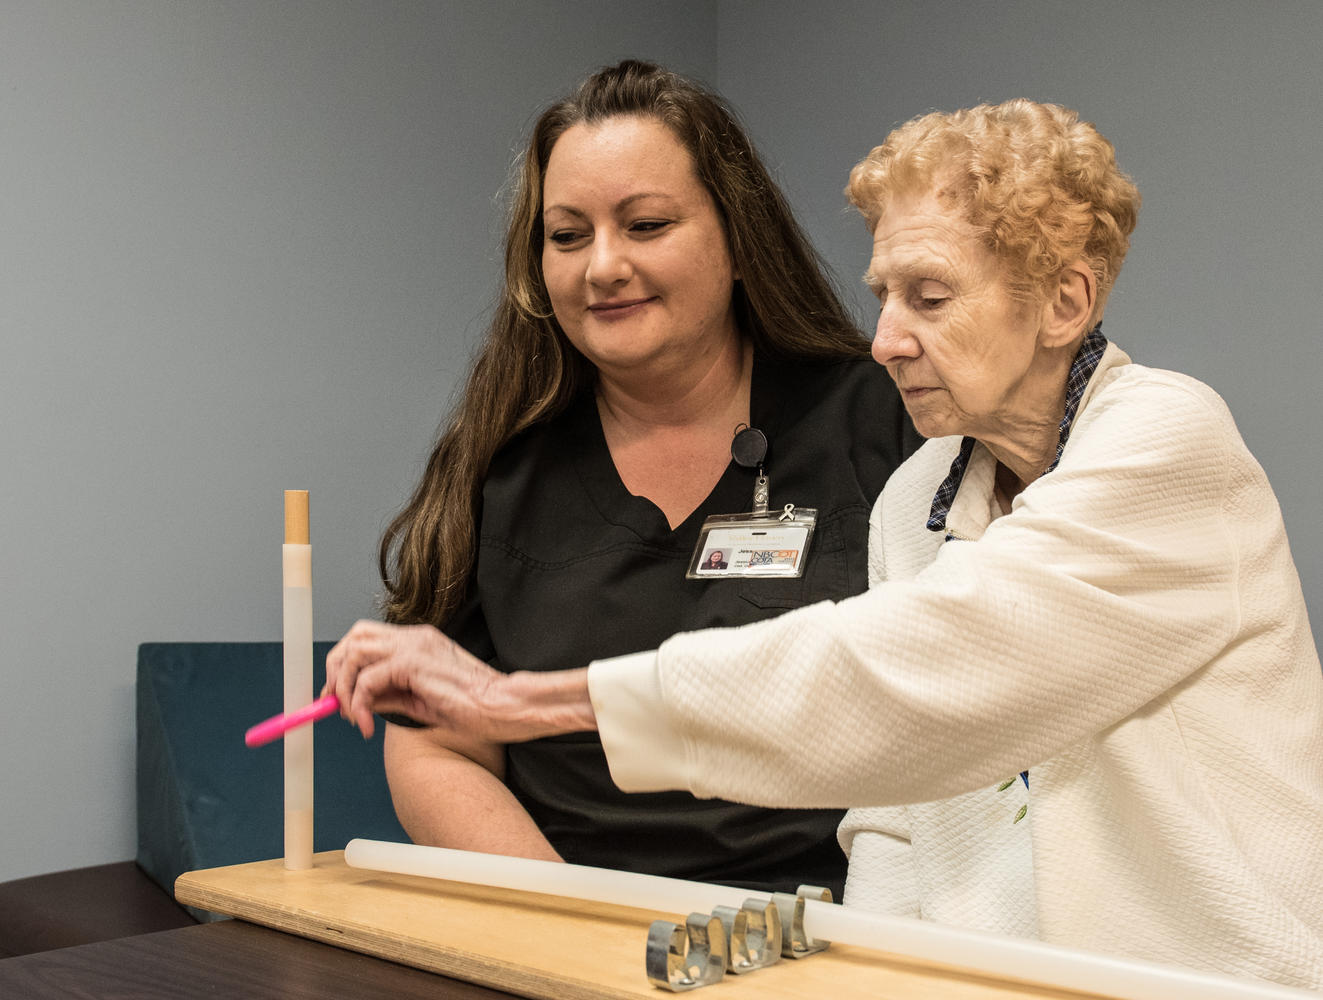 Stonerise Wellsburg Physical Therapy session with one patient and one therapist